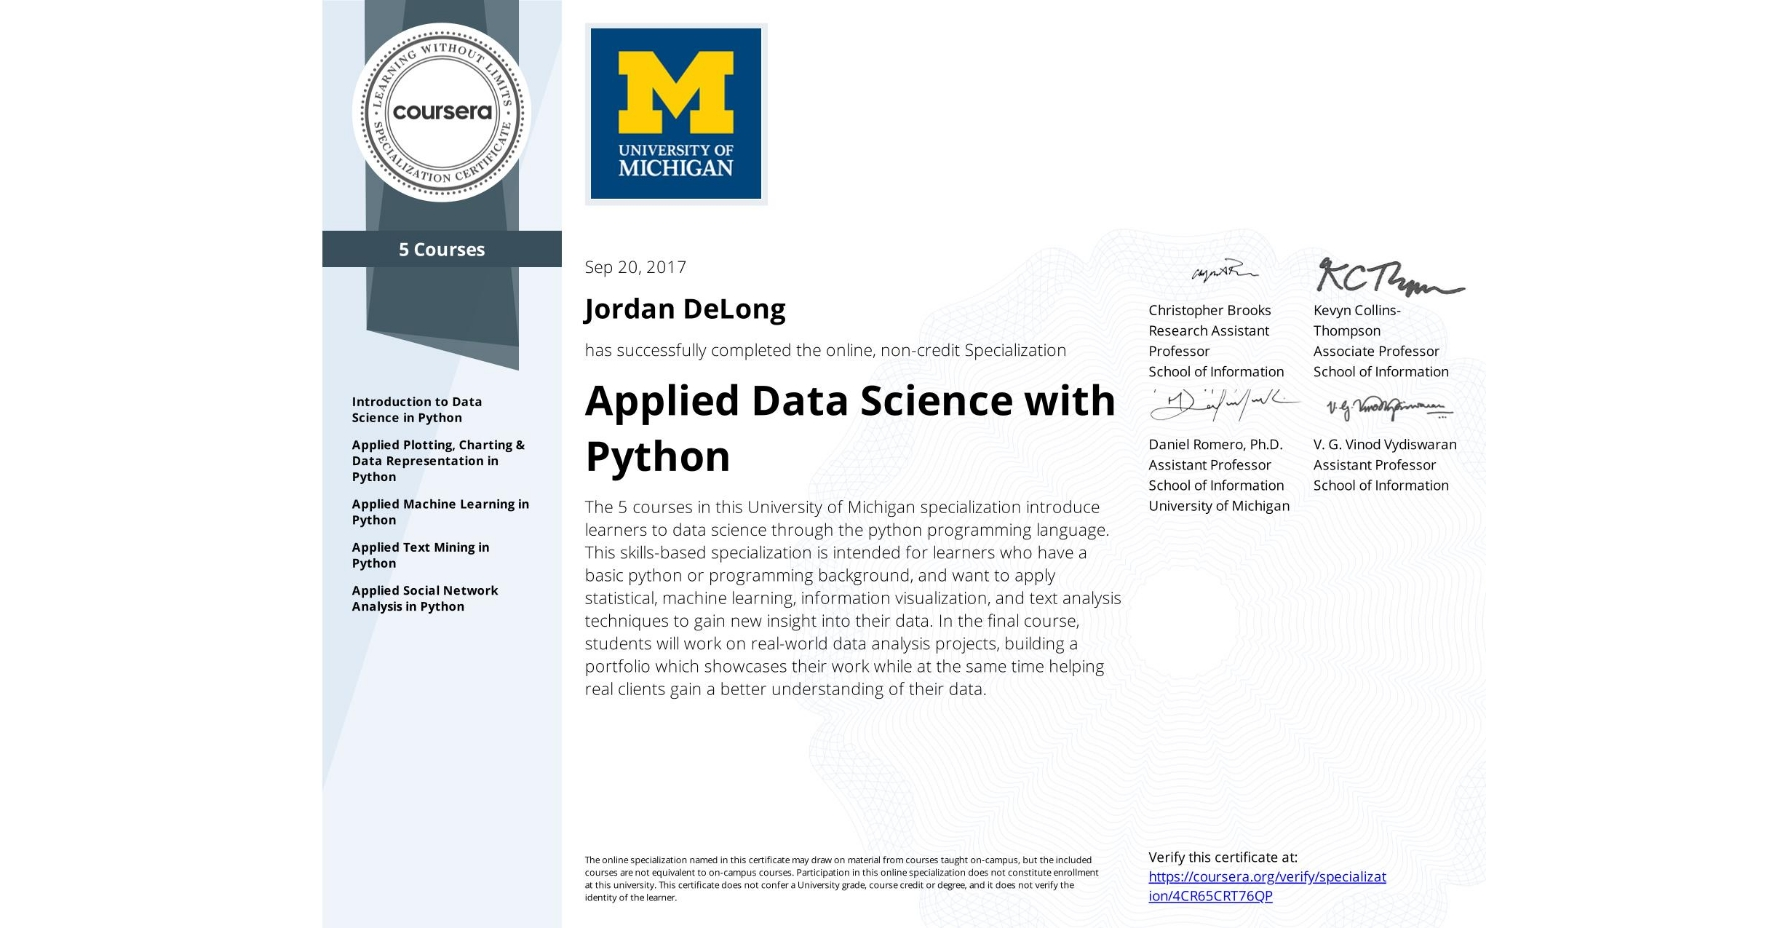 View certificate for Jordan DeLong, Applied Data Science with Python, offered through Coursera. The 5 courses in this University of Michigan specialization introduce learners to data science through the python programming language. This skills-based specialization is intended for learners who have a basic python or programming background, and want to apply statistical, machine learning, information visualization, and text analysis techniques to gain new insight into their data. In the final course, students will work on real-world data analysis projects, building a portfolio which showcases their work while at the same time helping real clients gain a better understanding of their data.